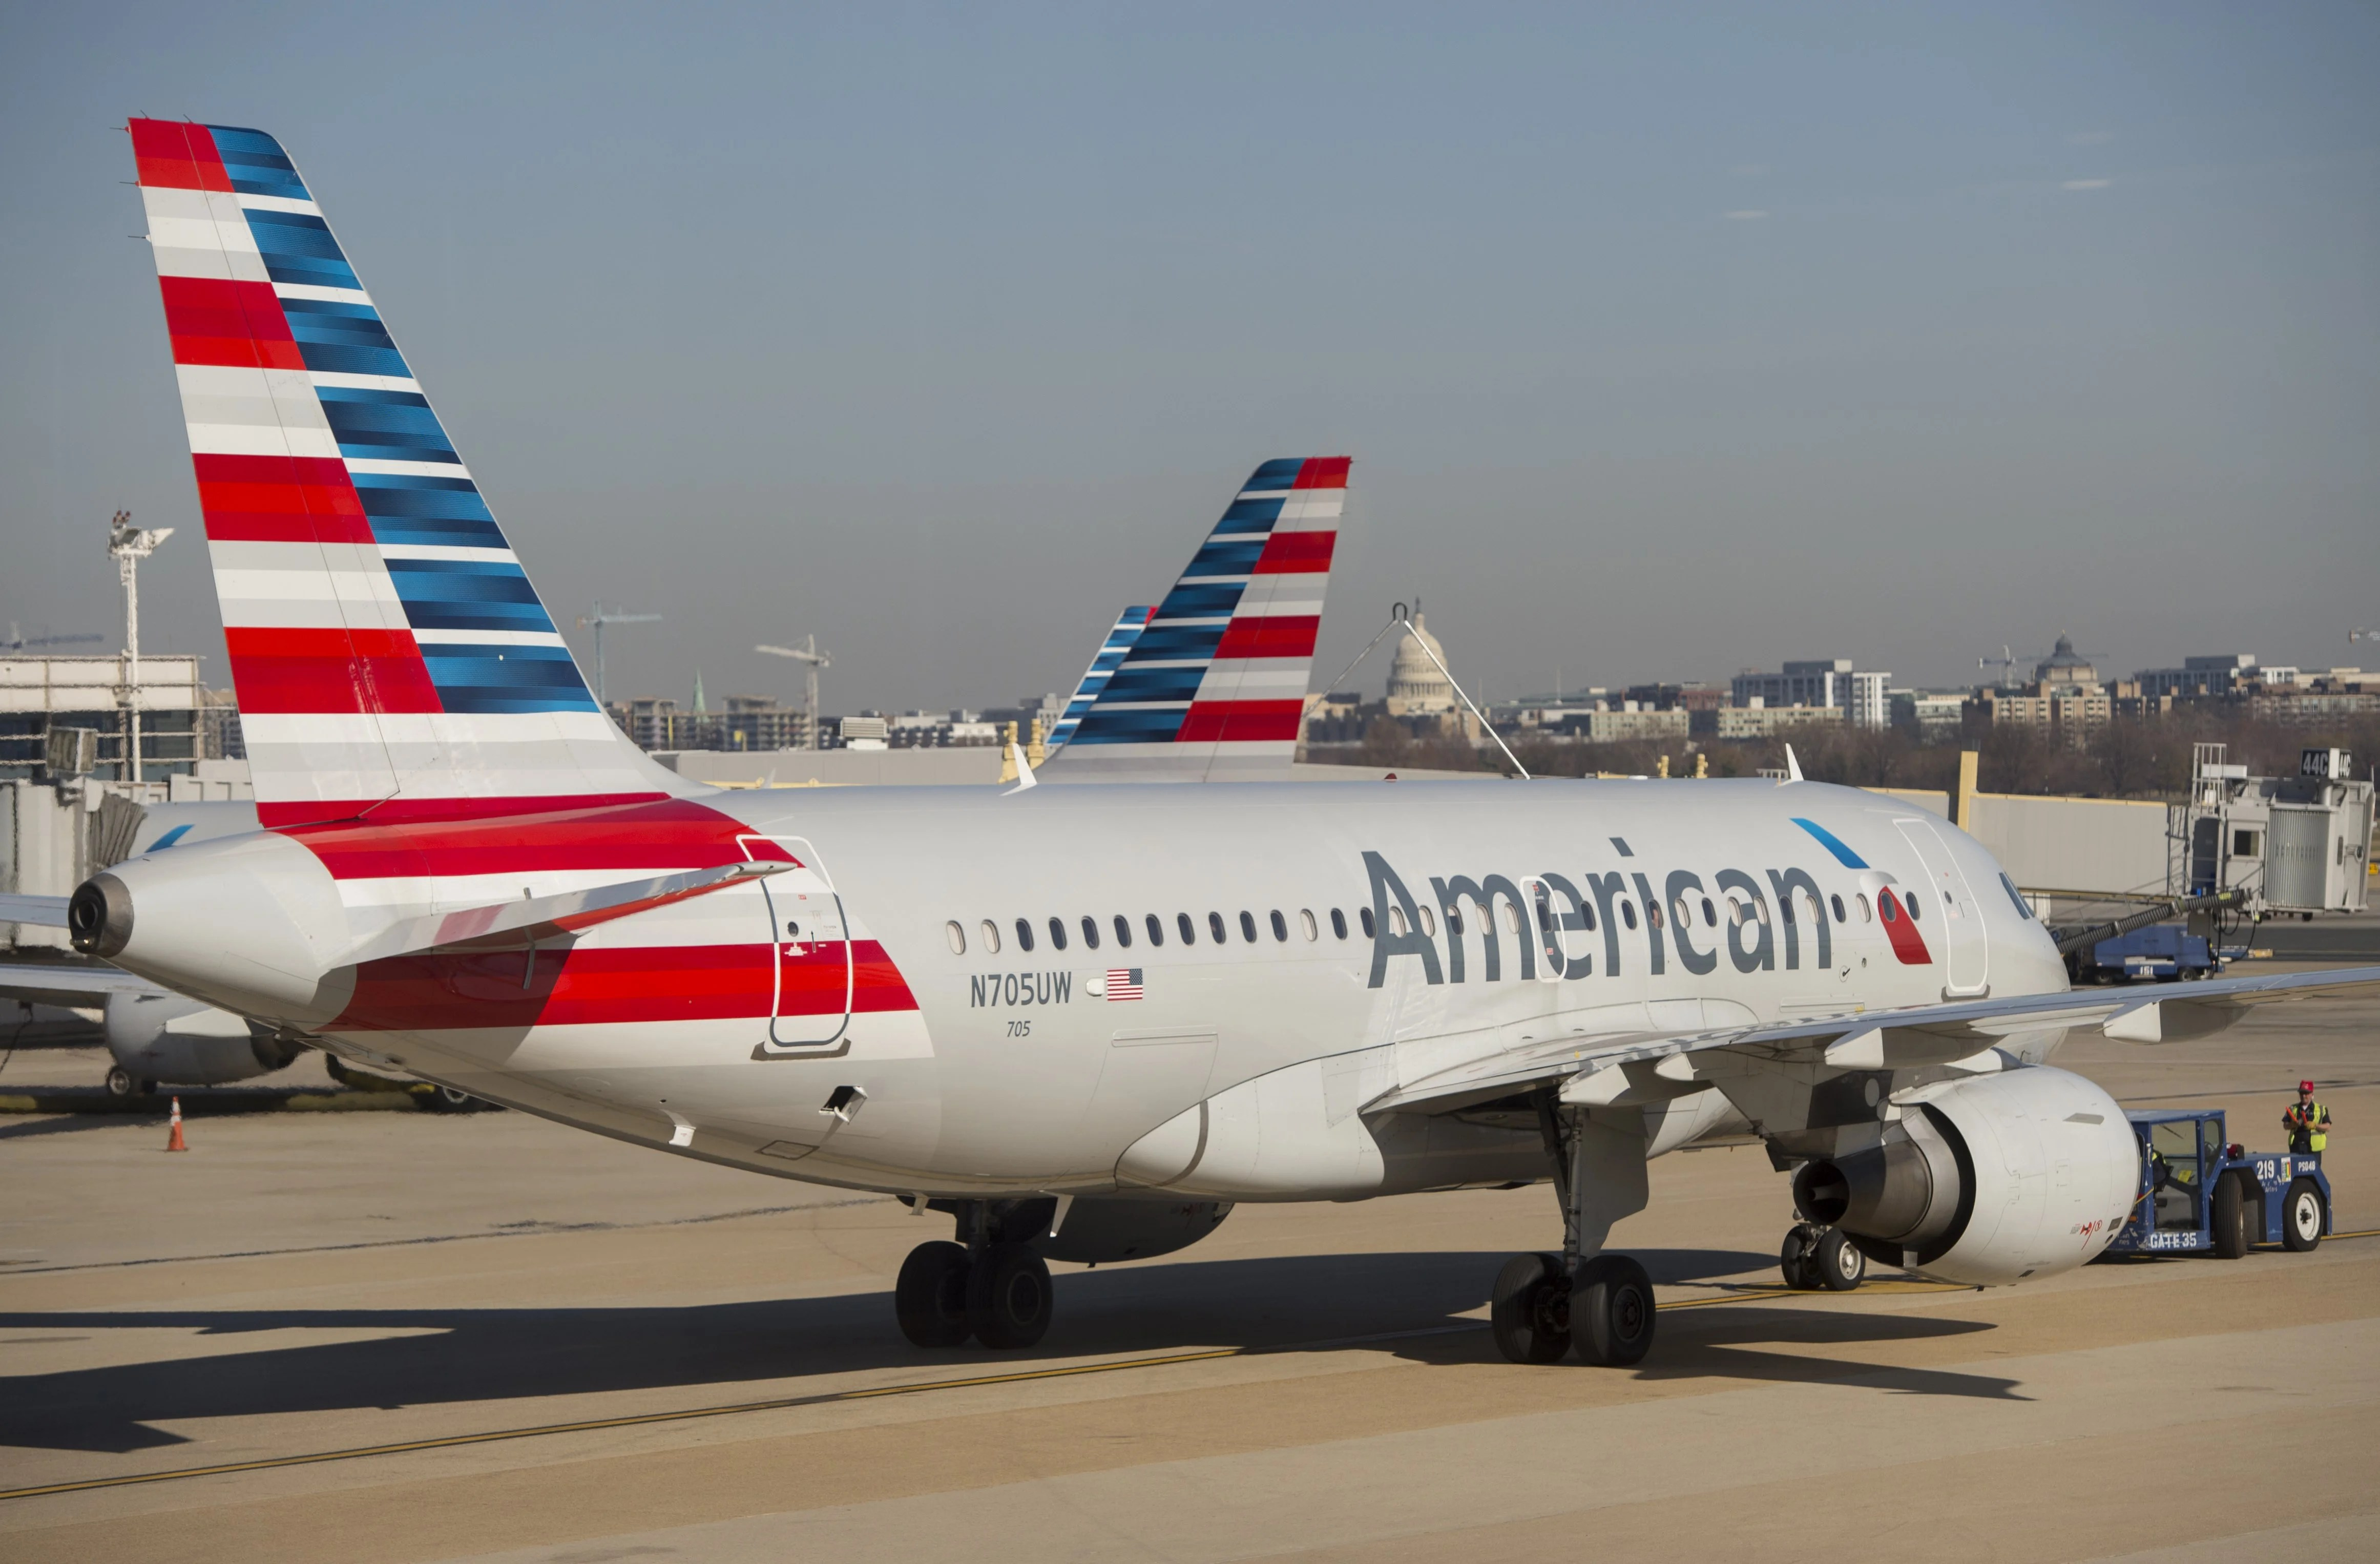 Why the American Airlines Shuttle continues the 'tradition' of rear-door deplaning